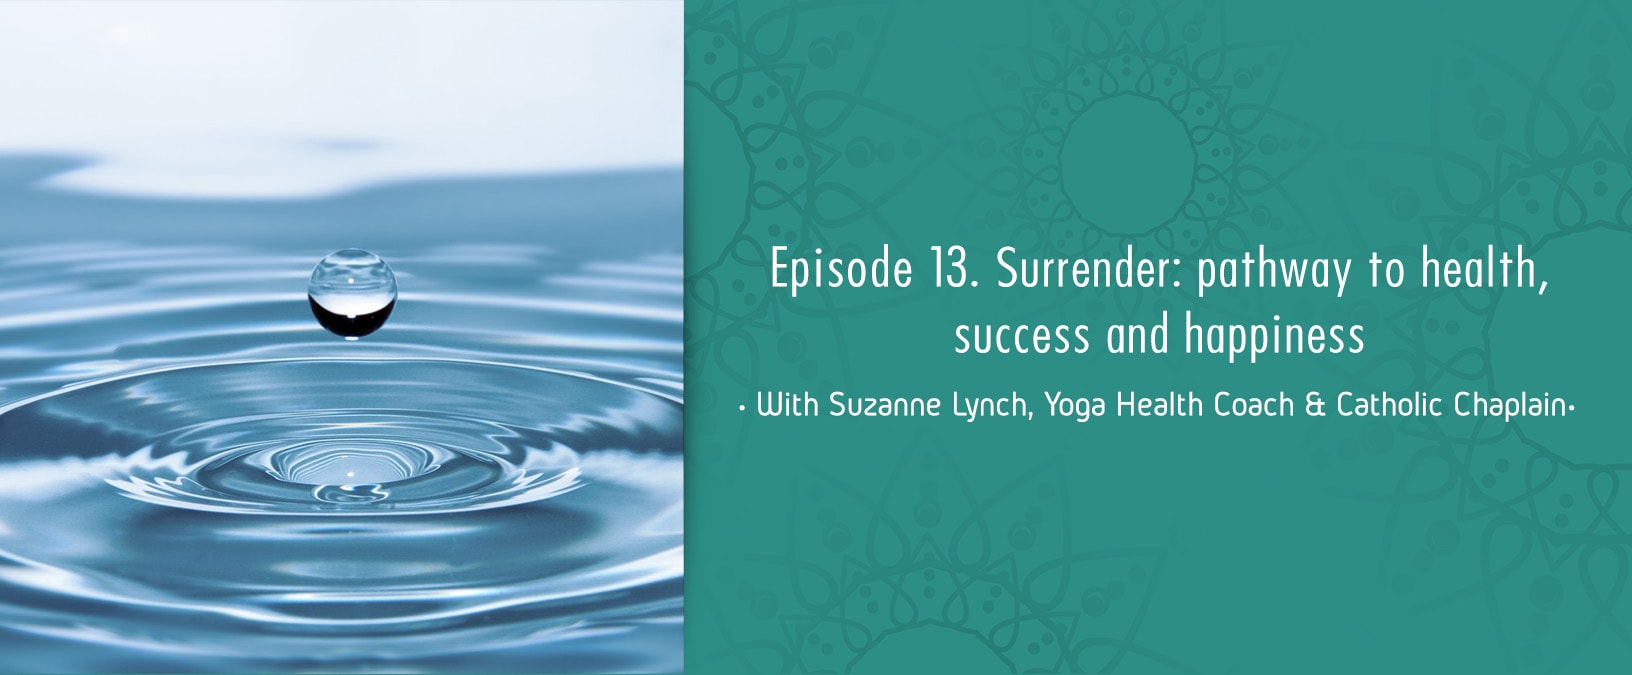 Surrender: pathway to health, success and happiness